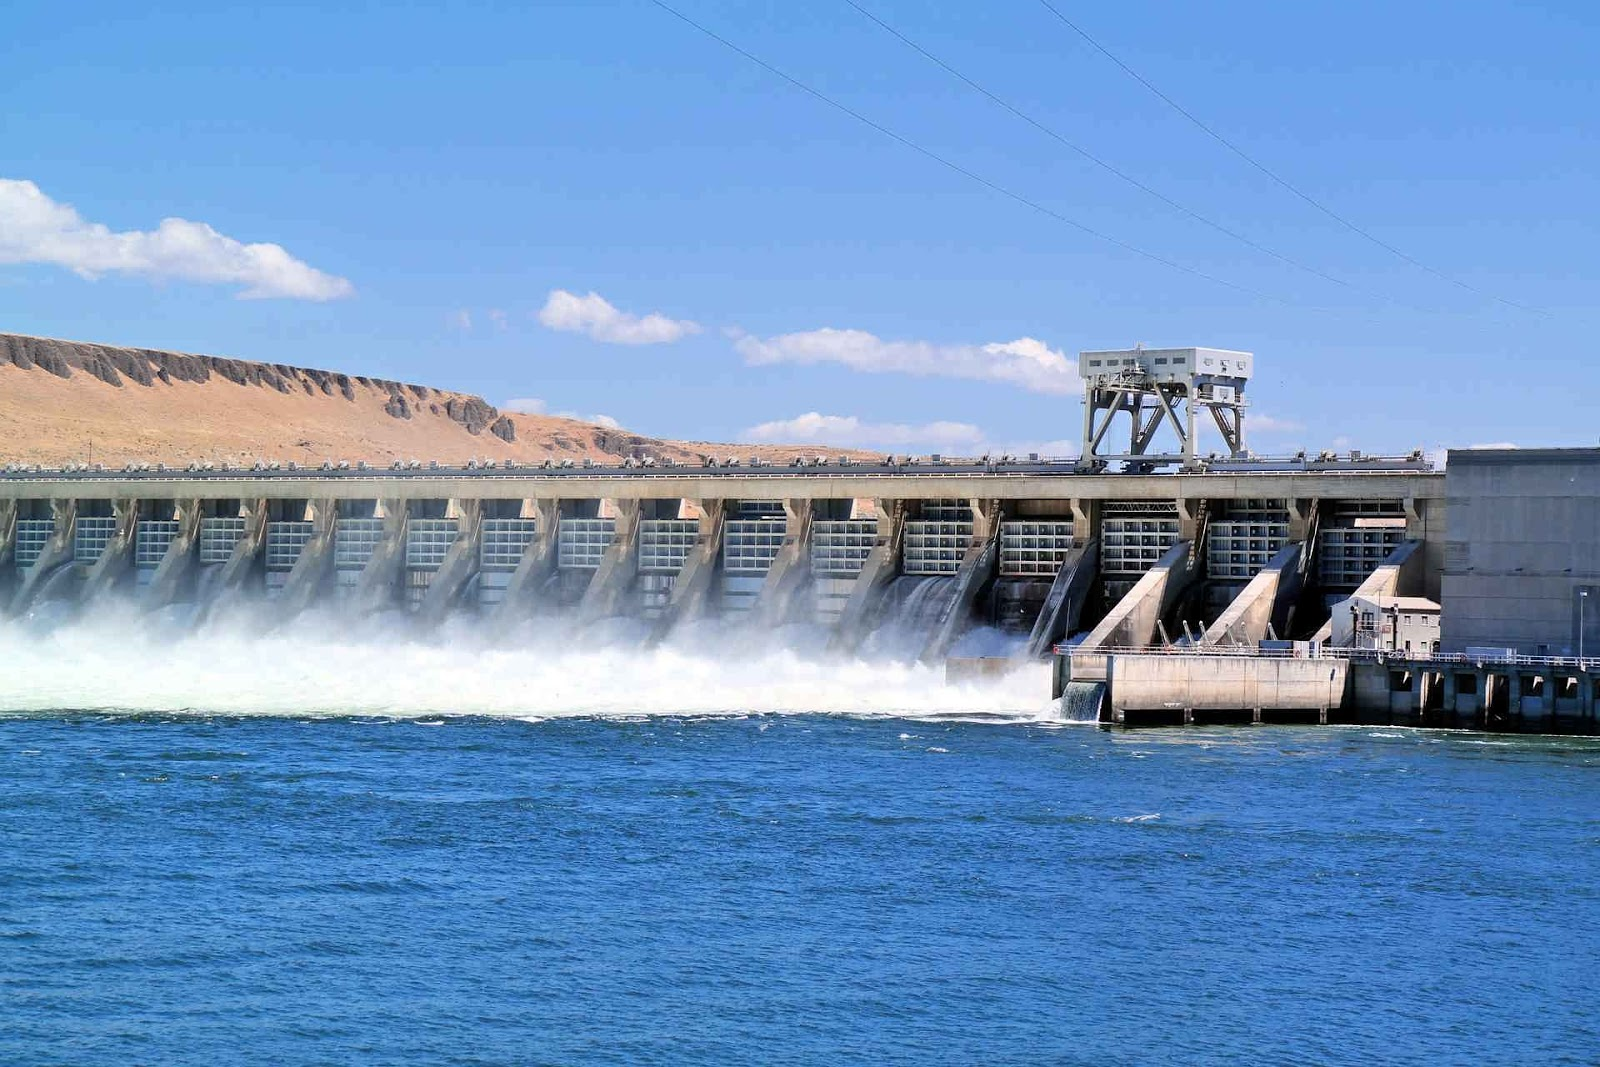 Hydroelectricity power plants